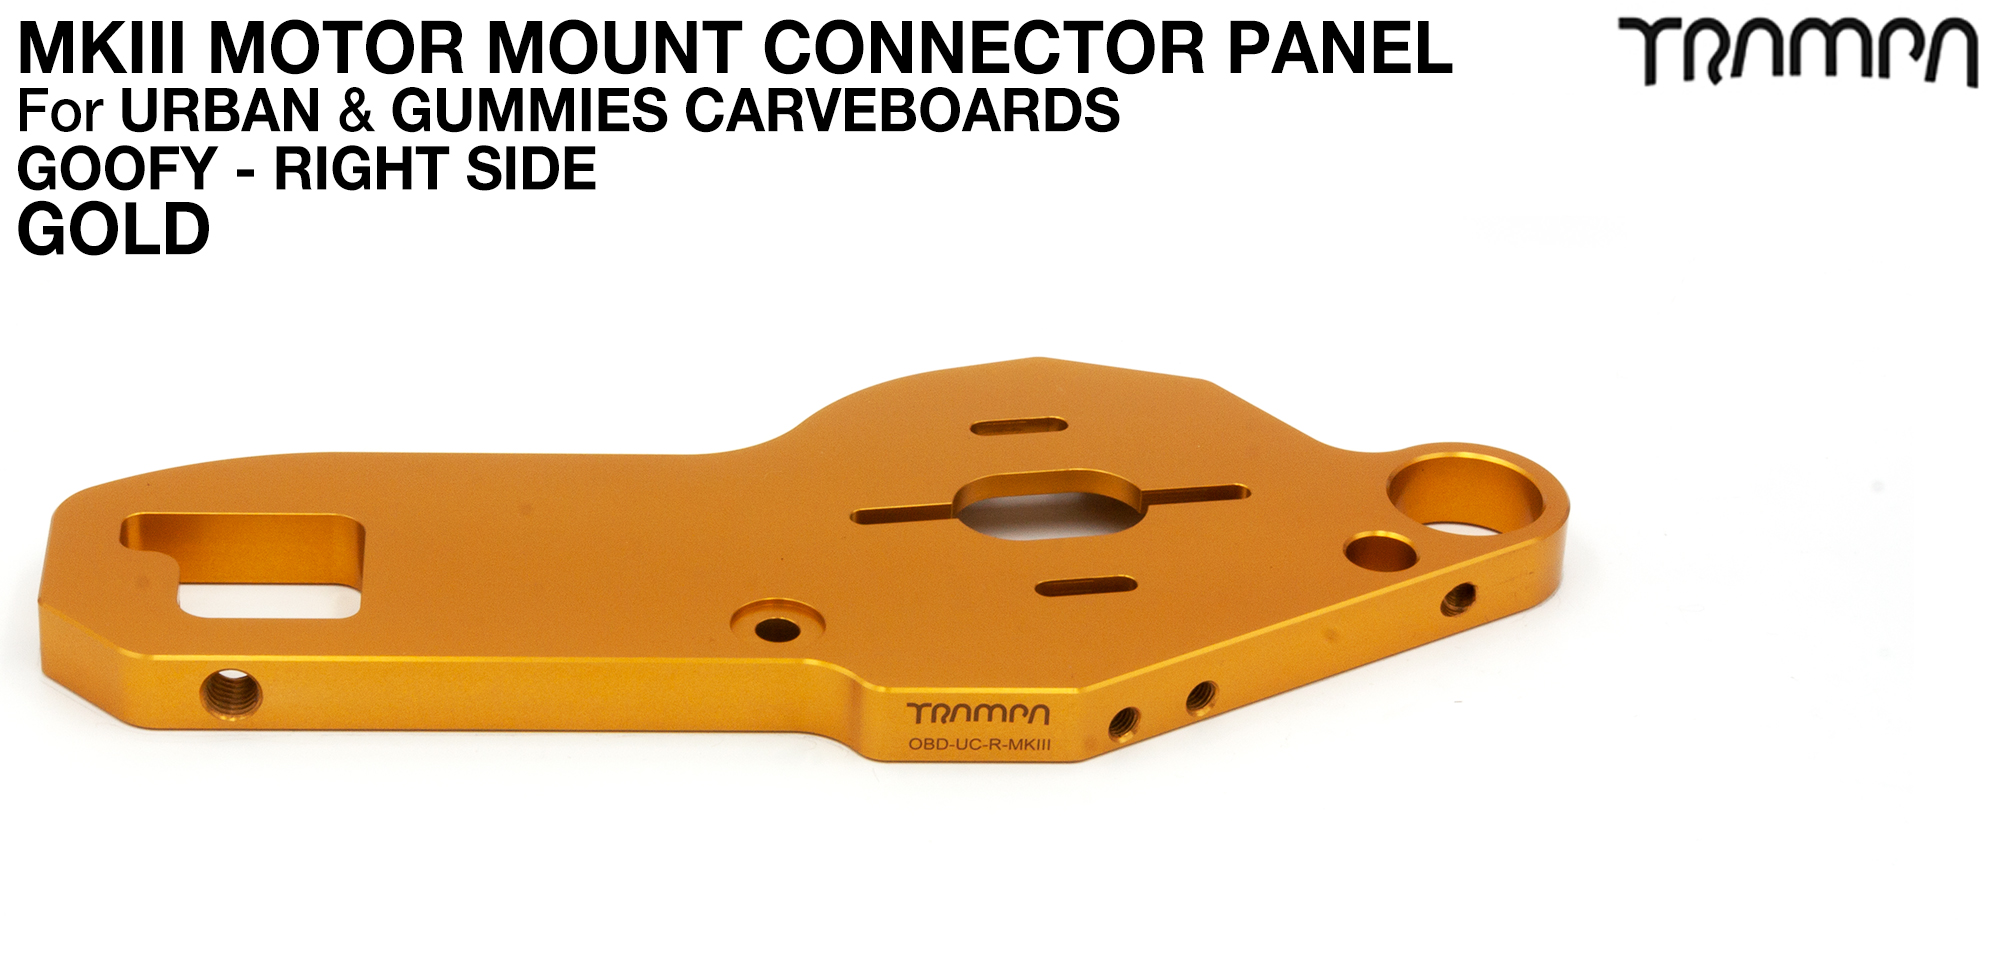 URBAN CARVE Motor Mount - GOOFY GOLD